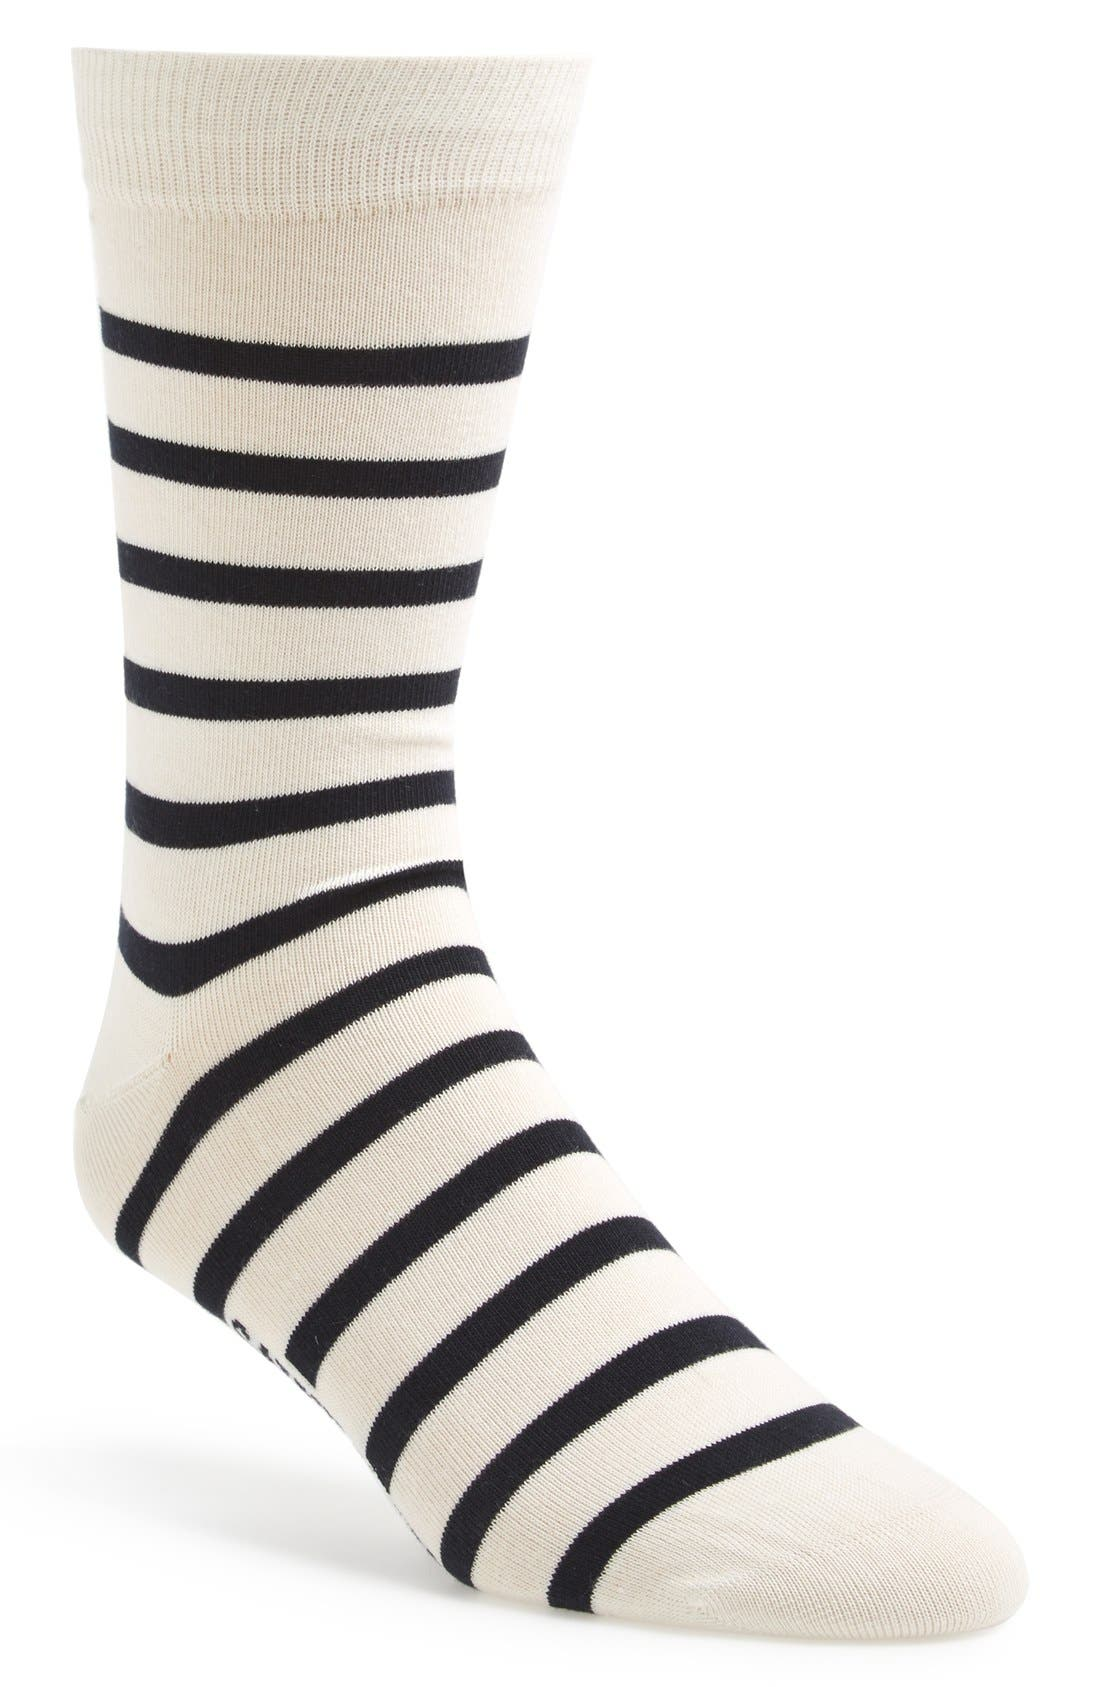 'Pieds Rayes A' Striped Socks,                         Main,                         color, 100